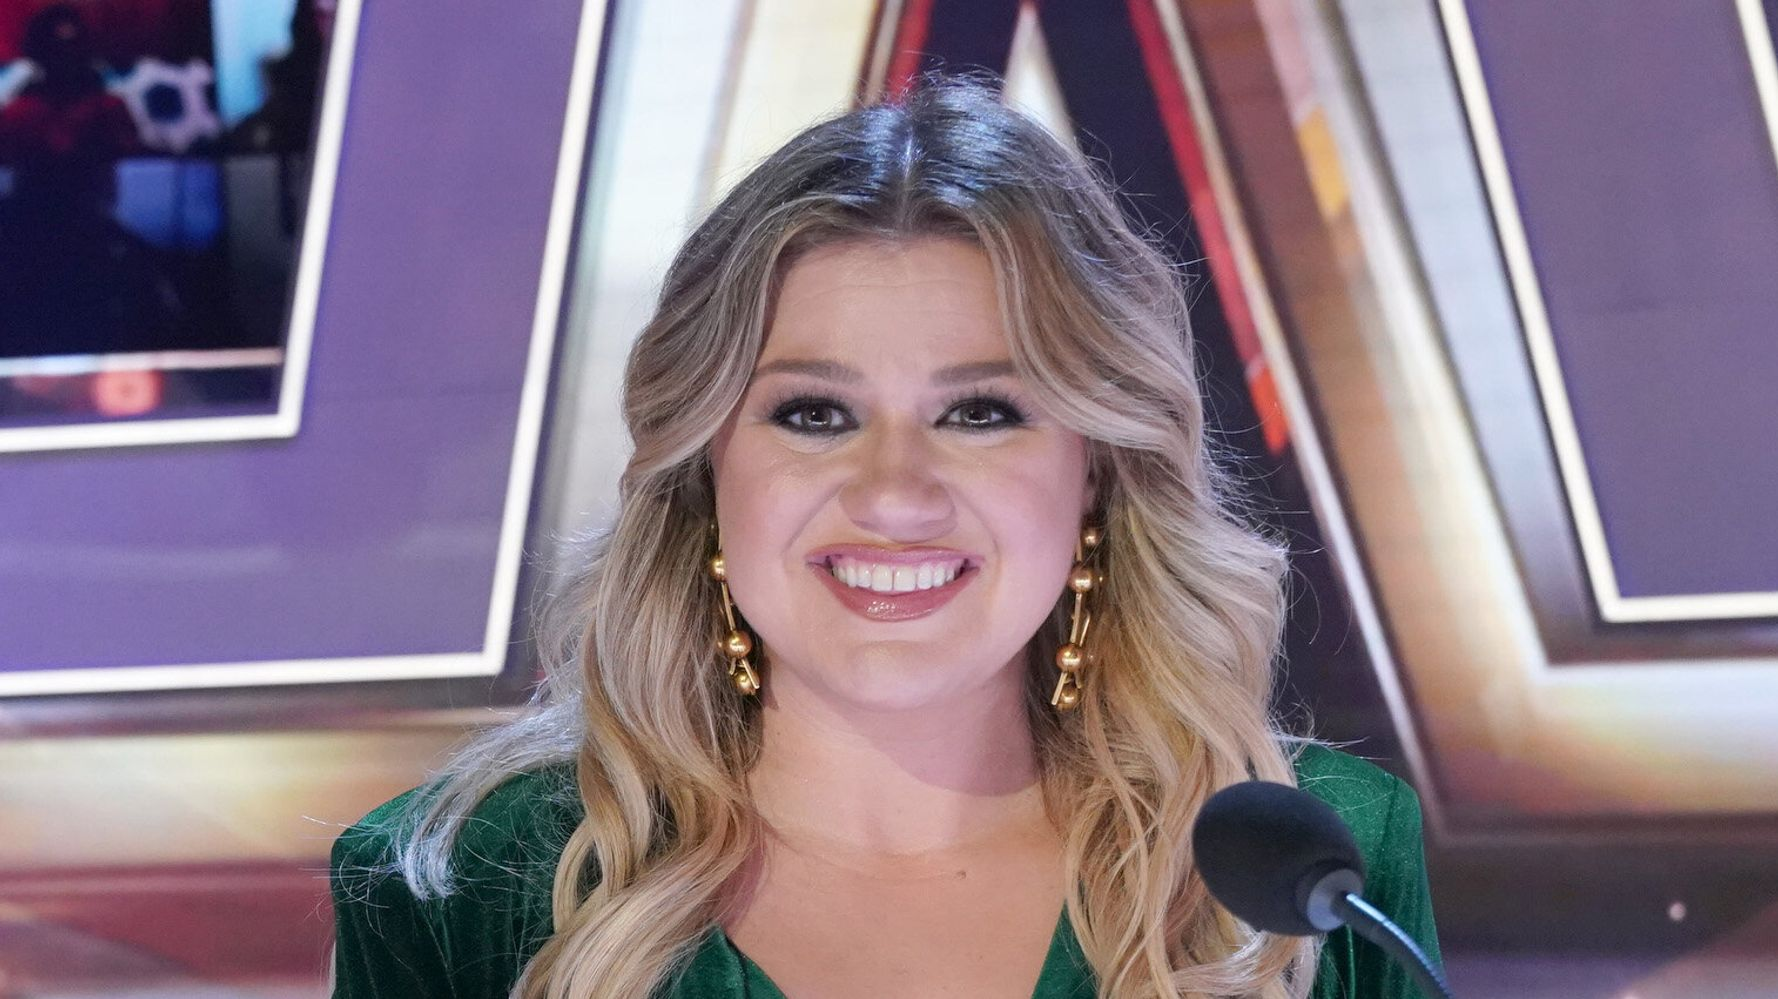 Kelly Clarkson Shuts Down Troll Who Accused Her Of Prioritizing Career Over Family